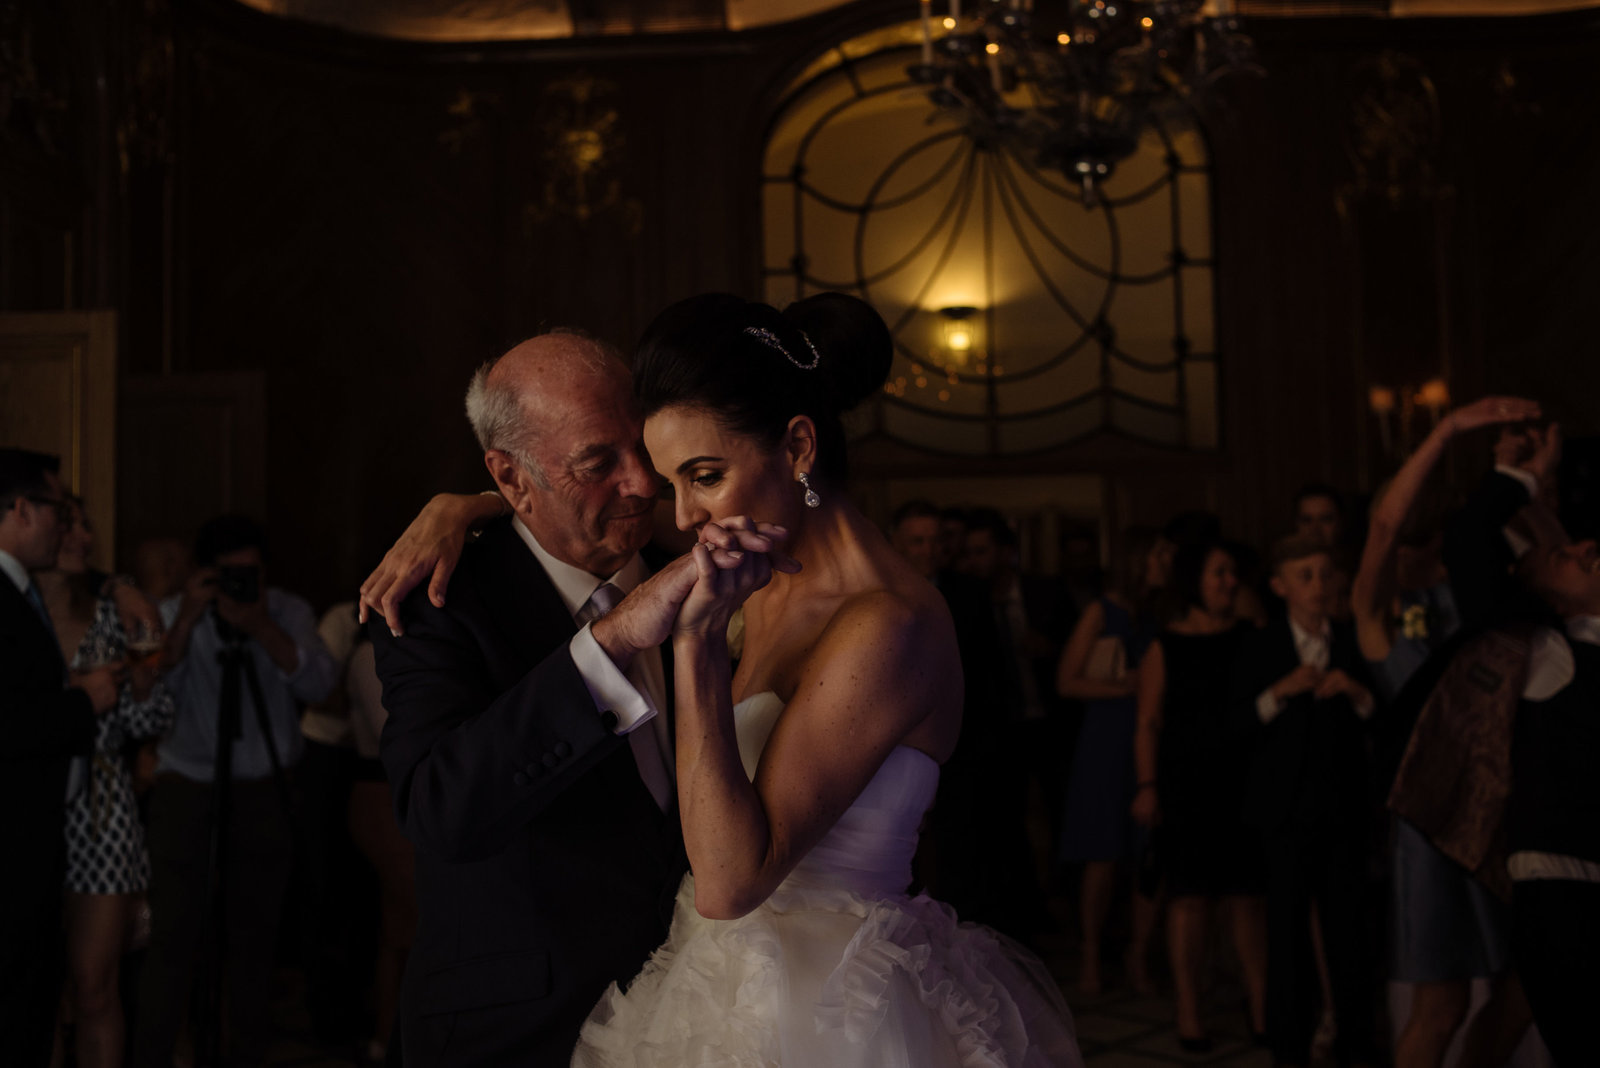 Father and daughter dance at Claridges hotel. Fine art wedding photographer